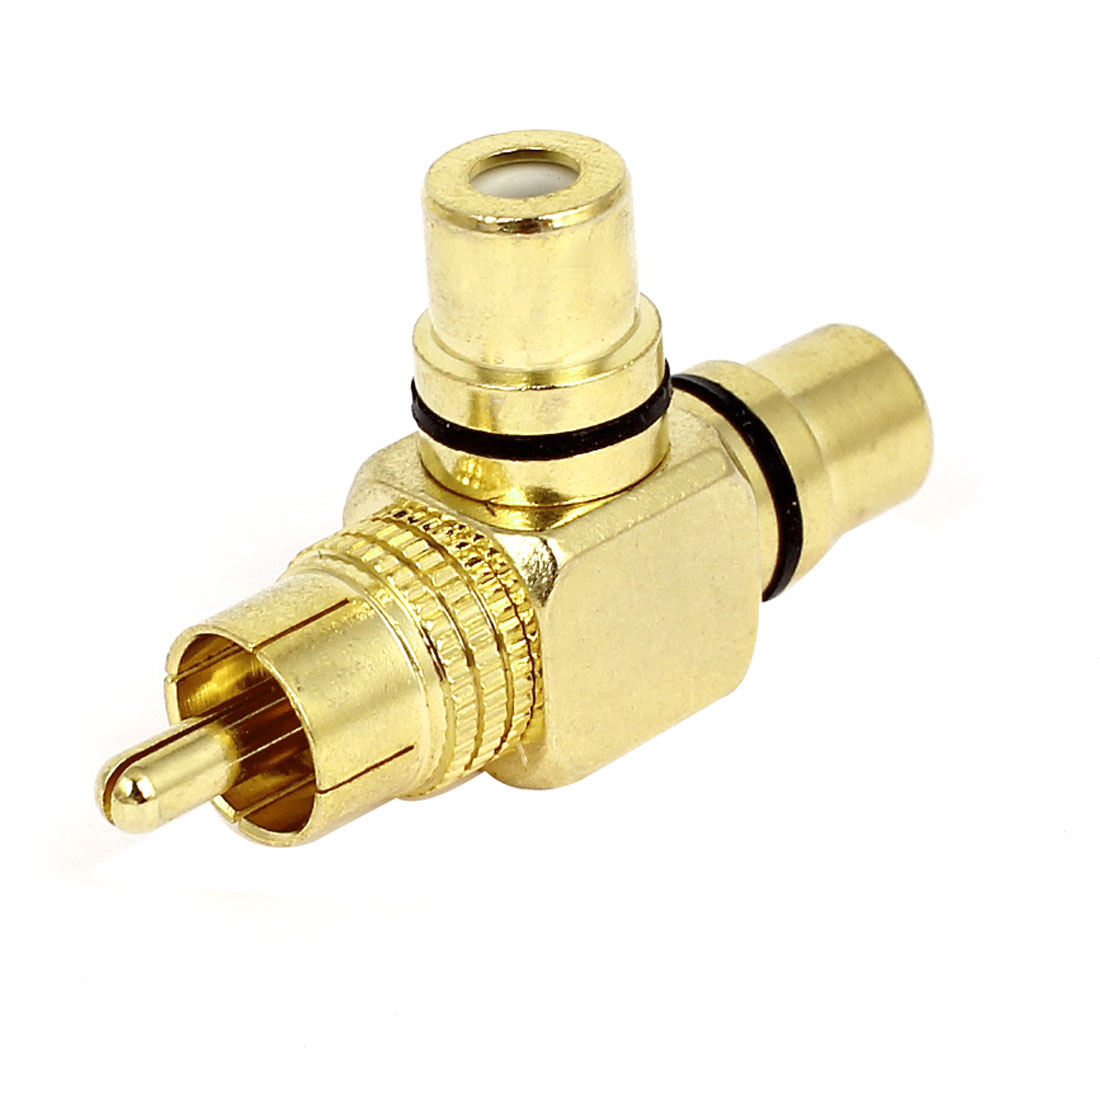 Gold Plated T Shape RCA 1 Male to 2 Female Jack Connector Adapter